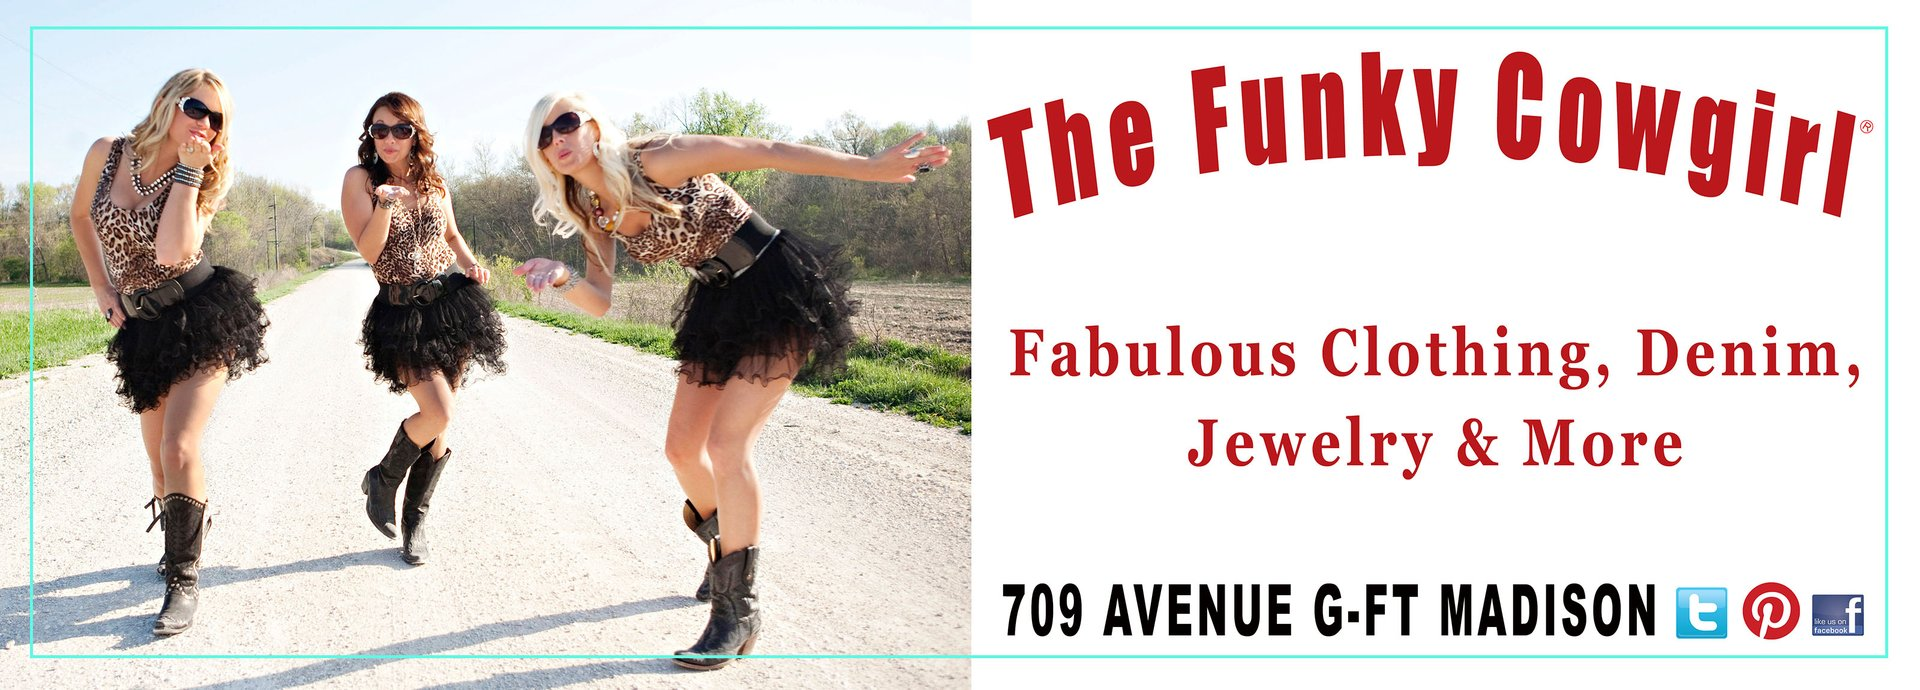 The Funky Cowgirl Clothing